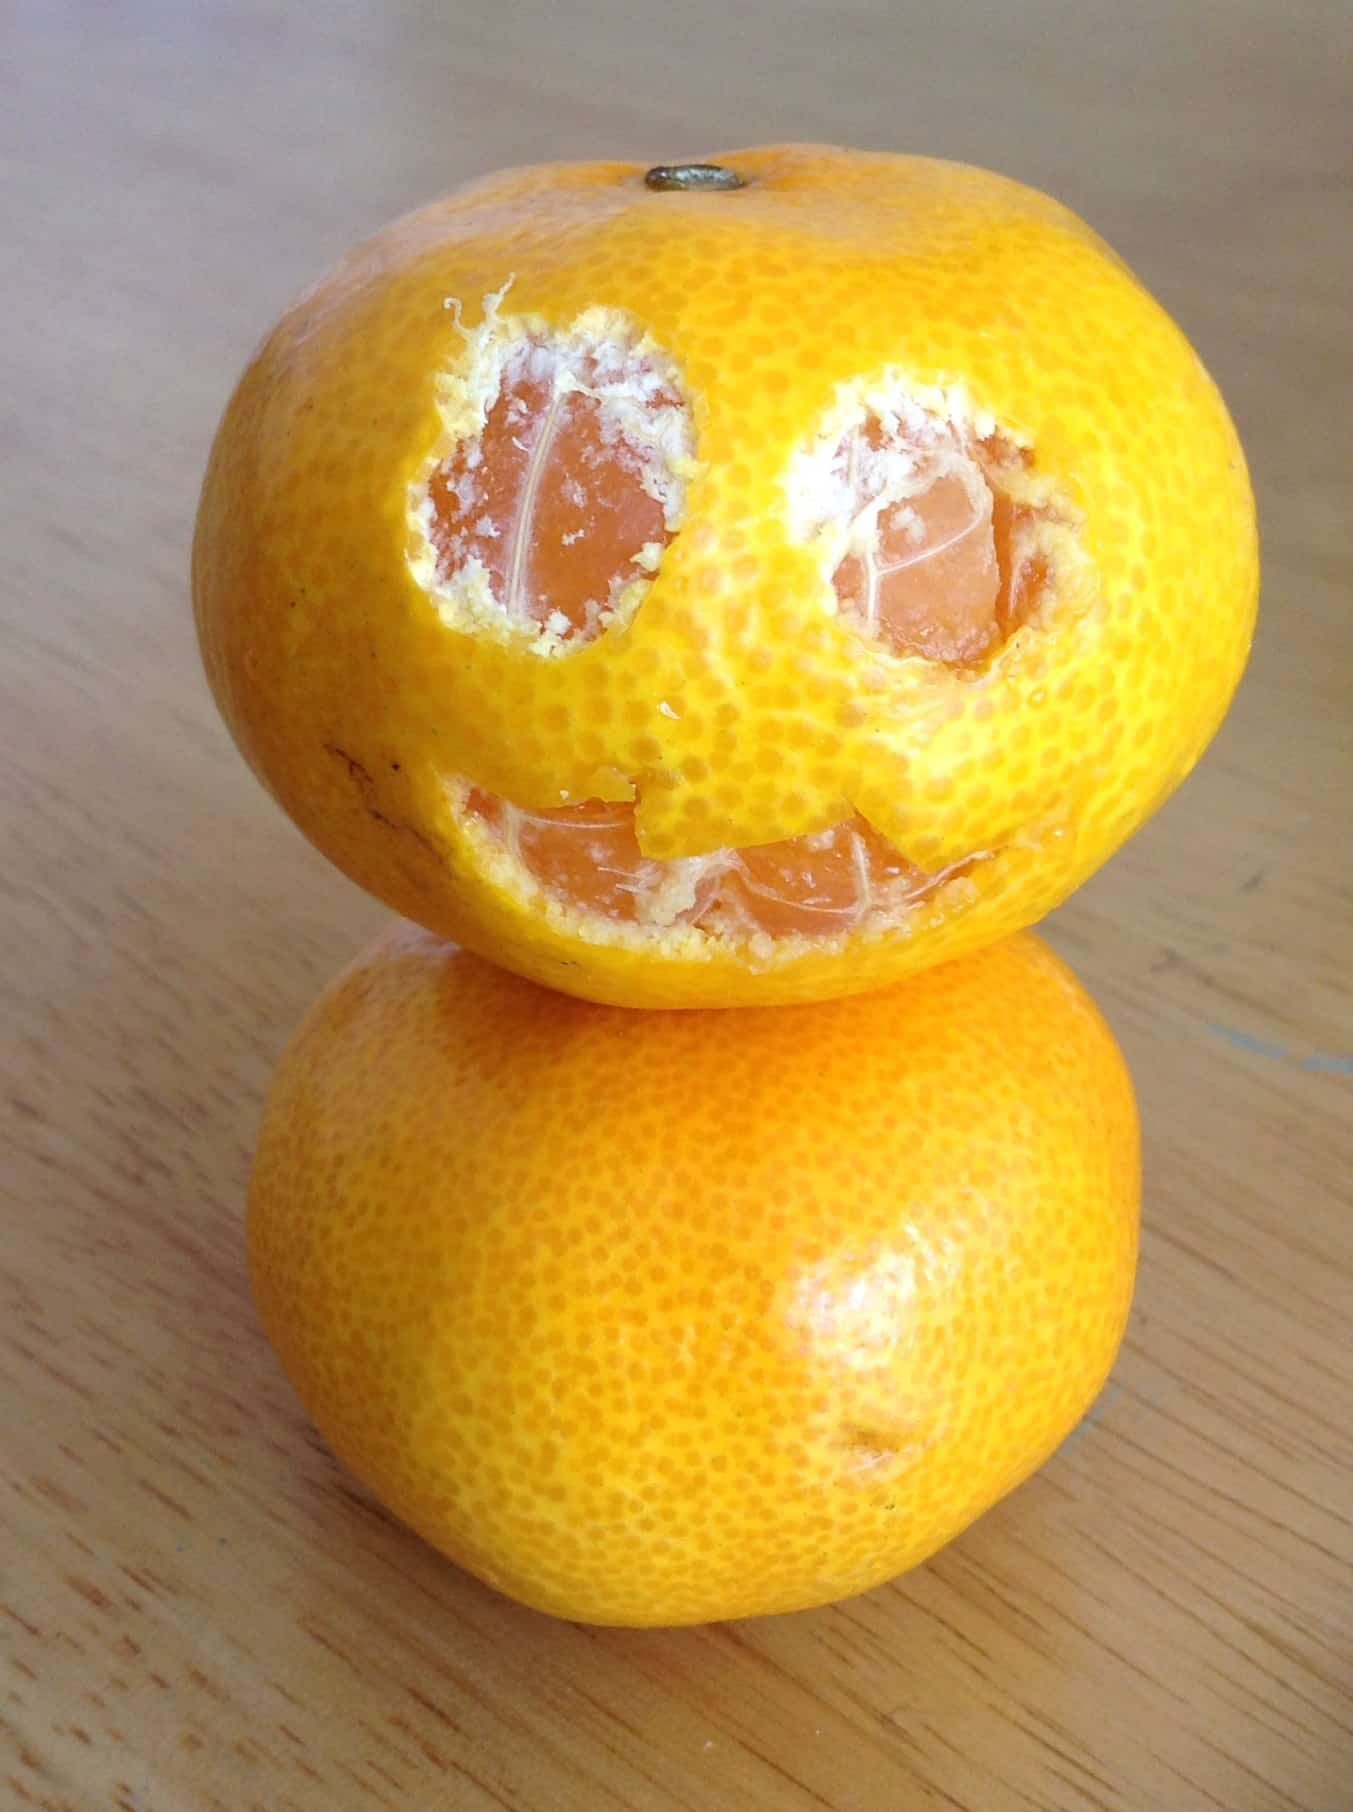 Satsuma with a scary pumpkin face cut out of the skin.